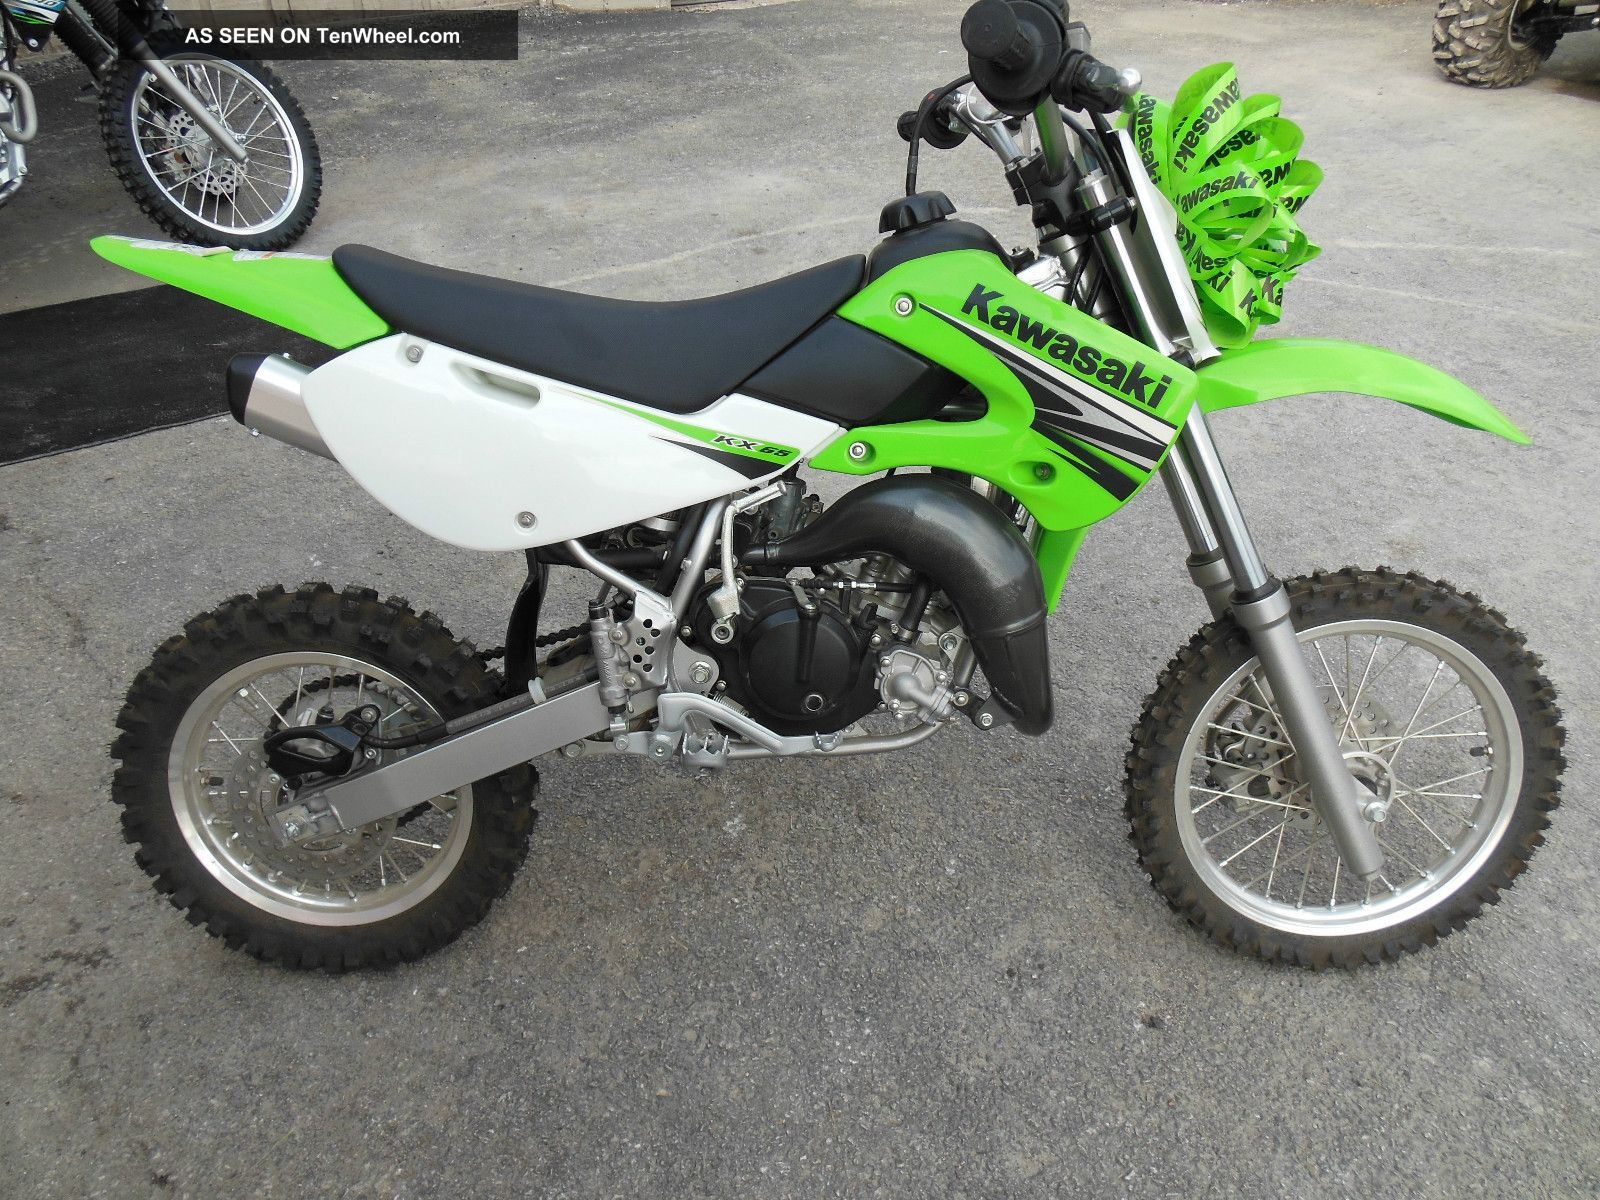 2009 kawasaki kx 65 pics specs and information. Black Bedroom Furniture Sets. Home Design Ideas